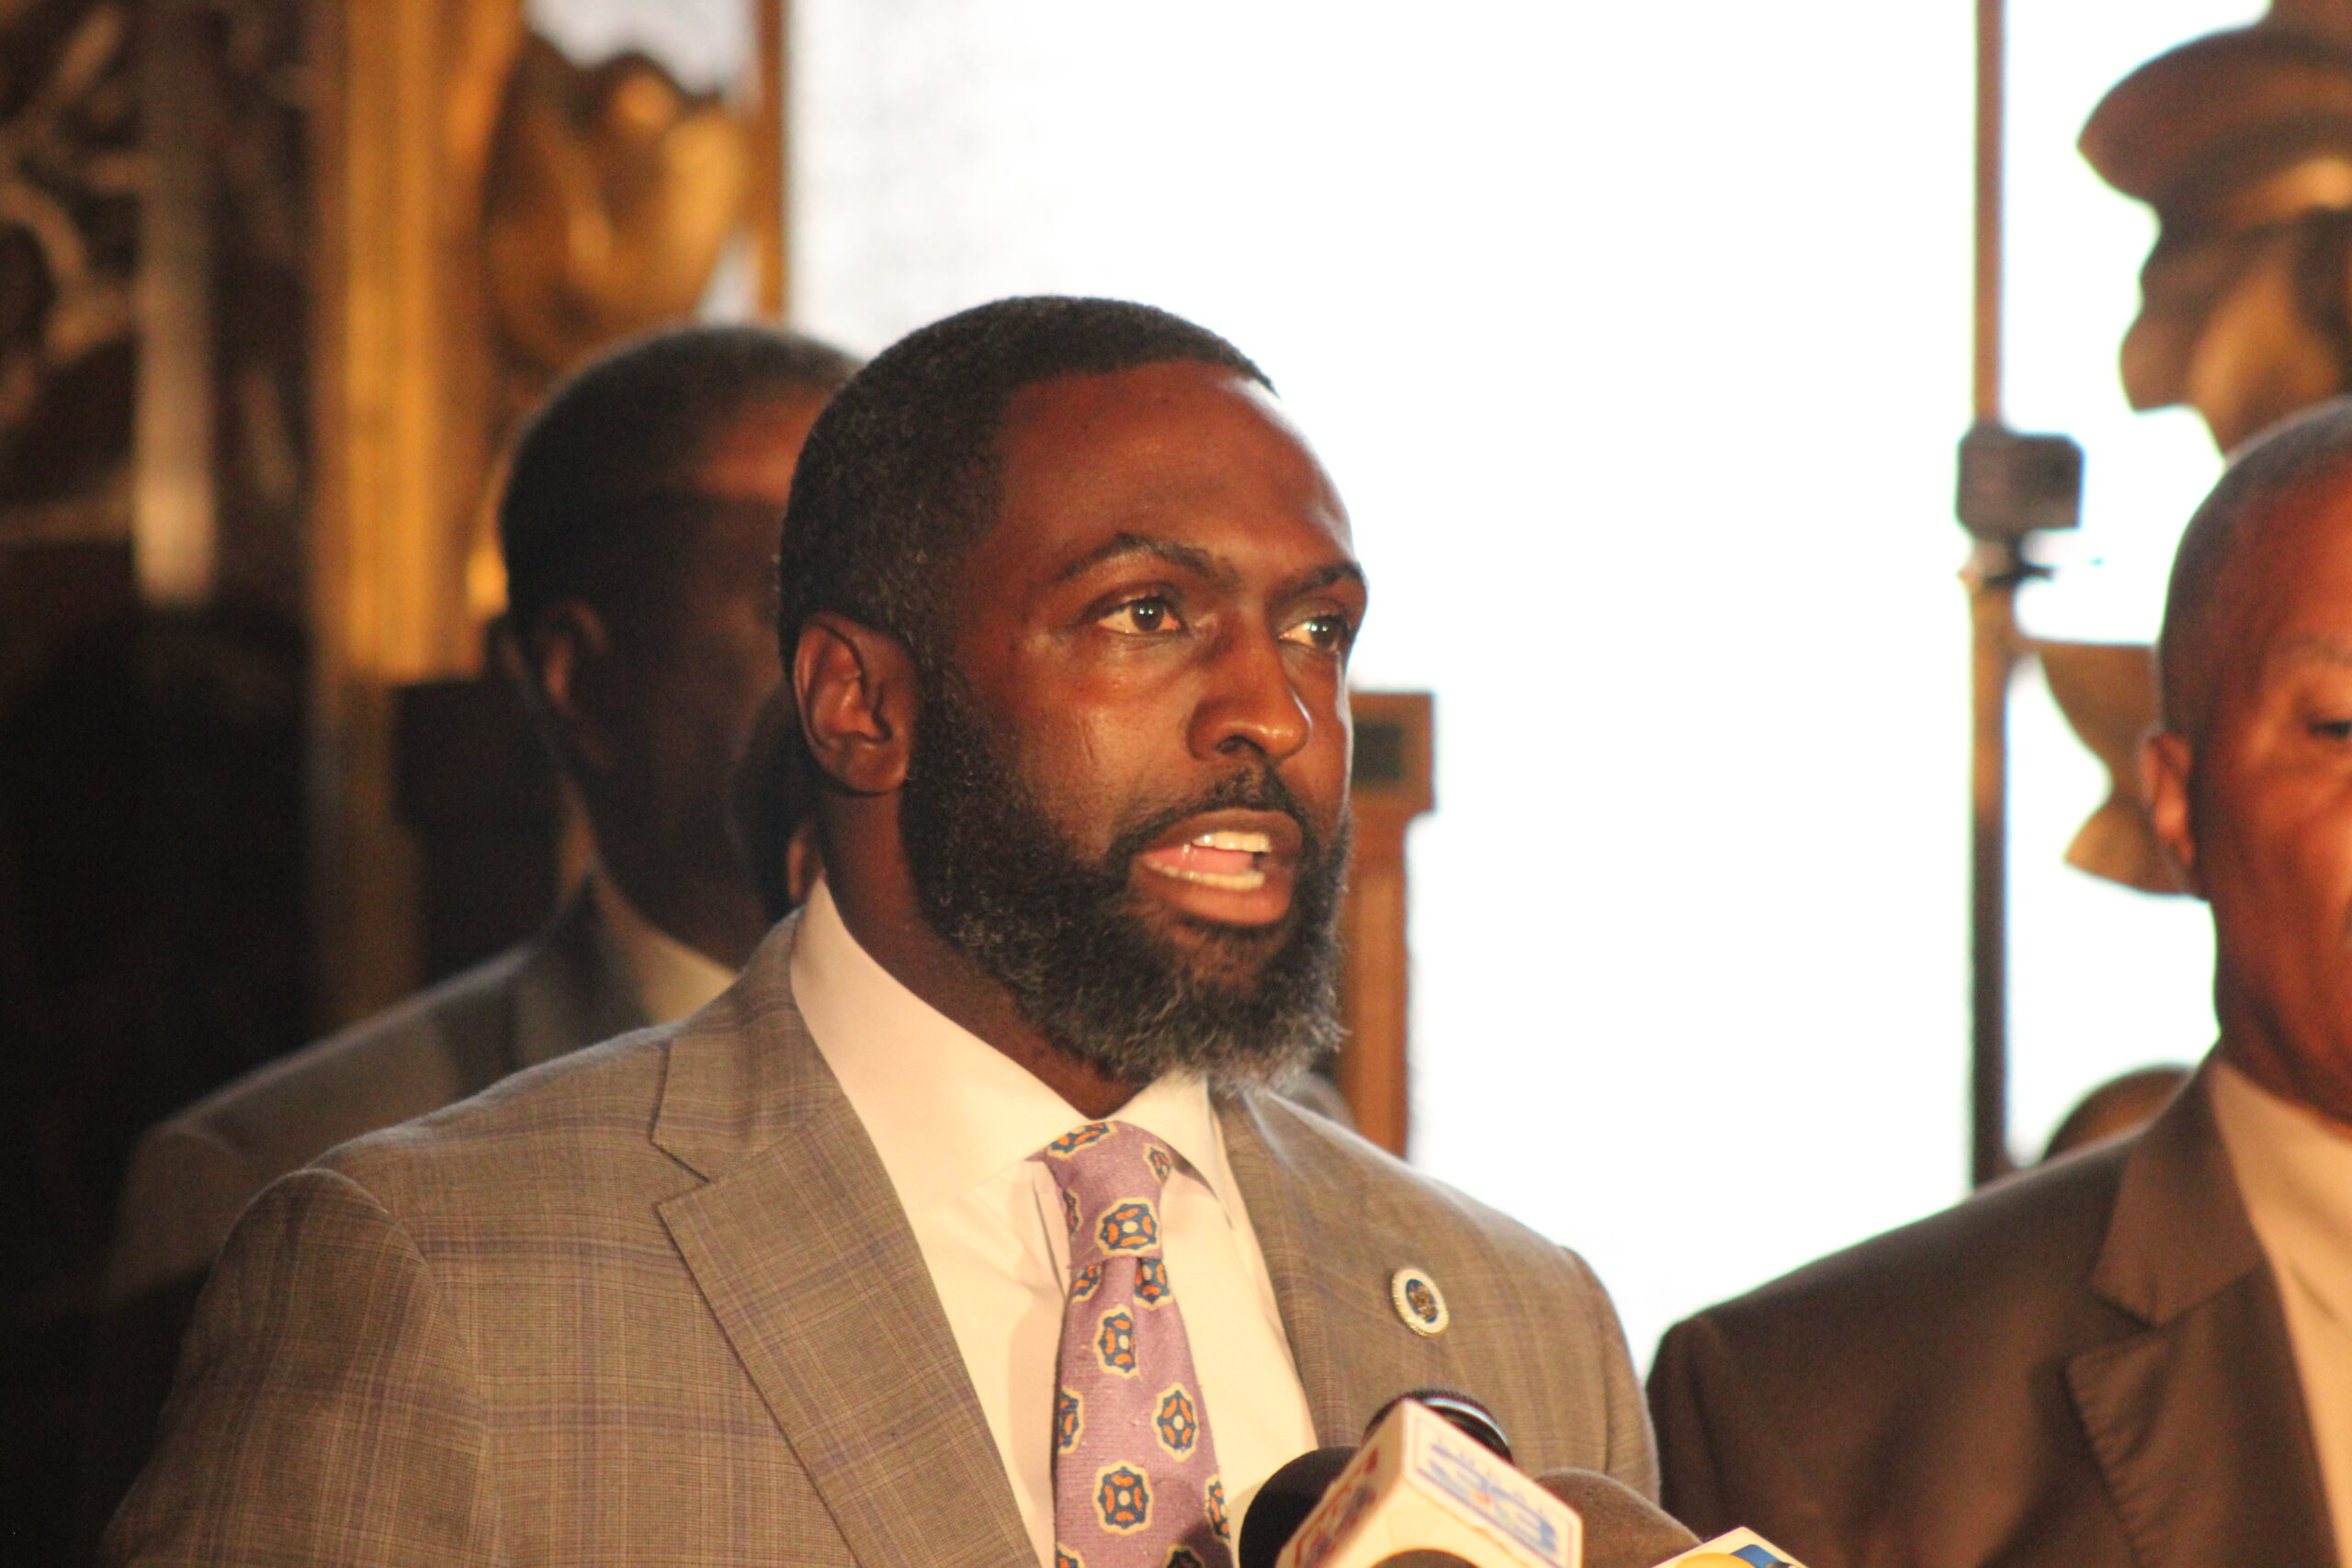 Black Caucus asks feds to launch full-scale investigation of Louisiana State Police